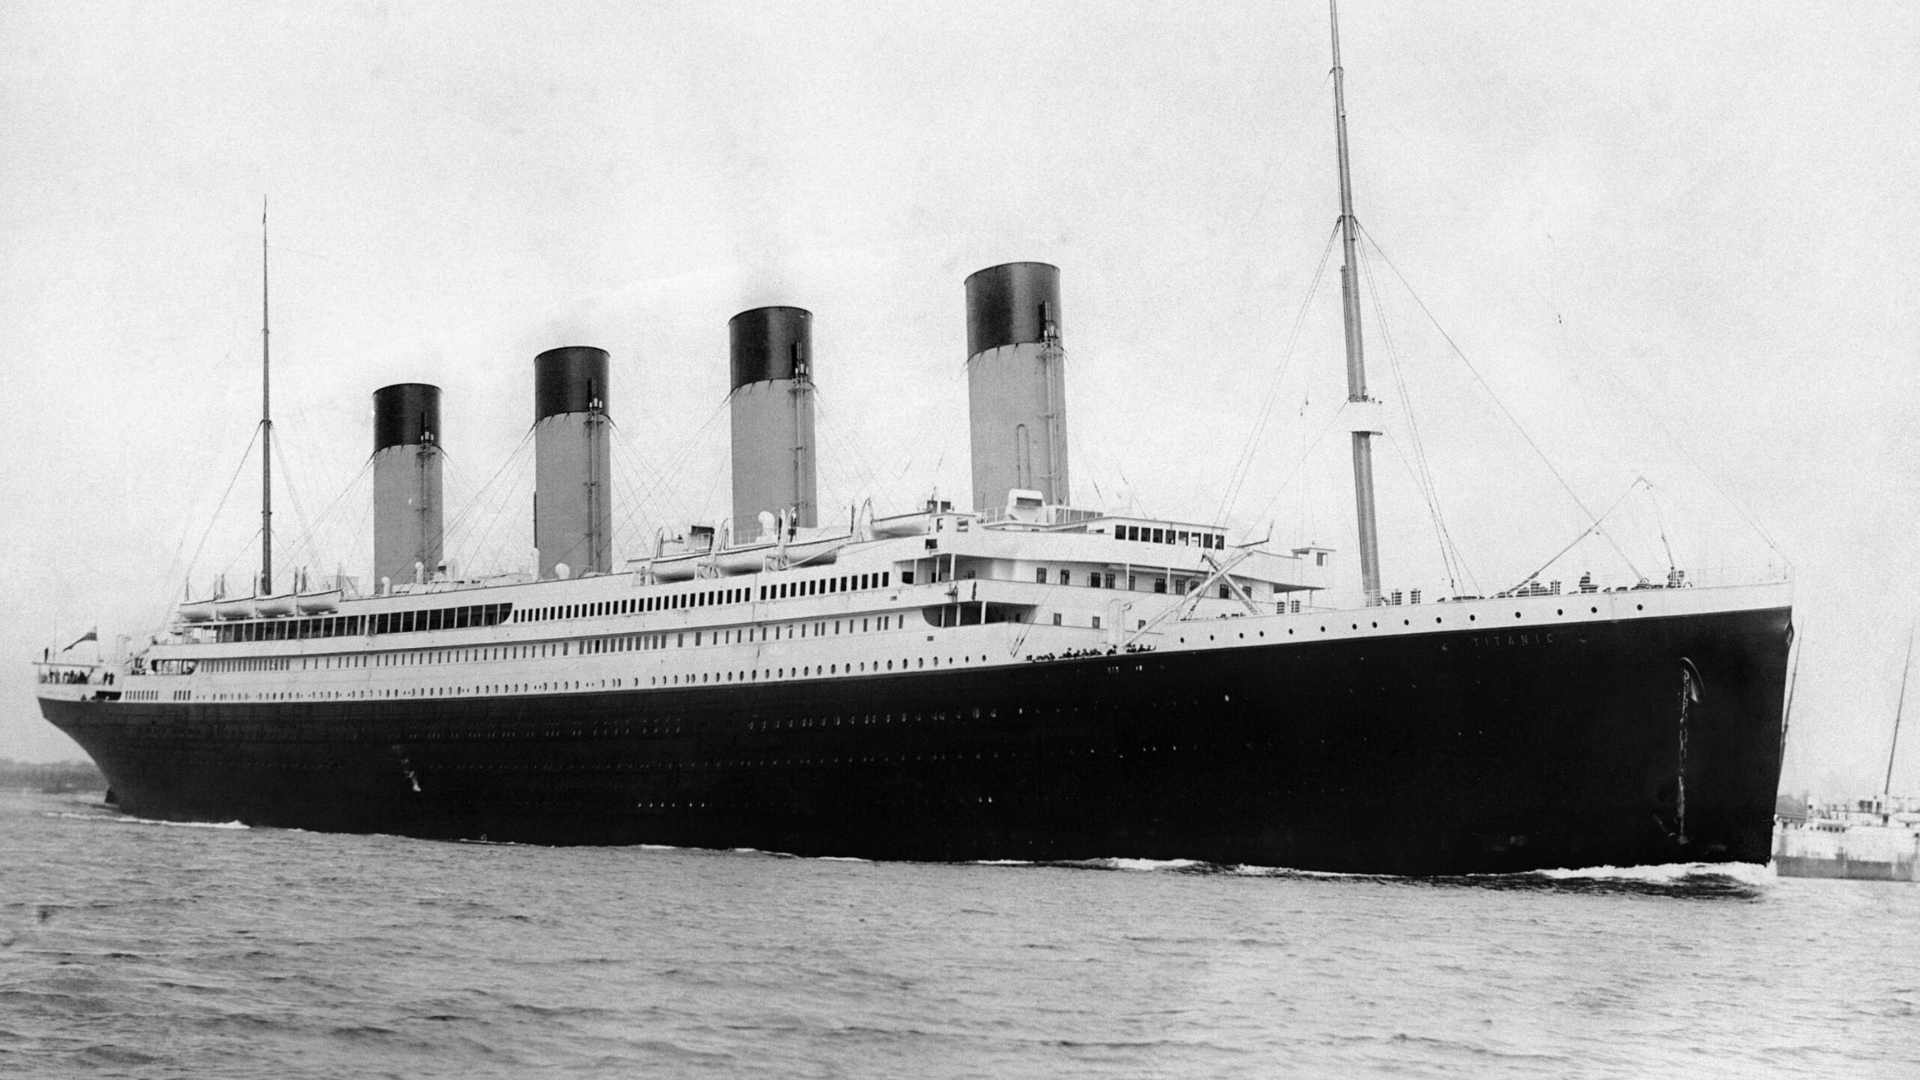 Abandoning the Titanic Preview